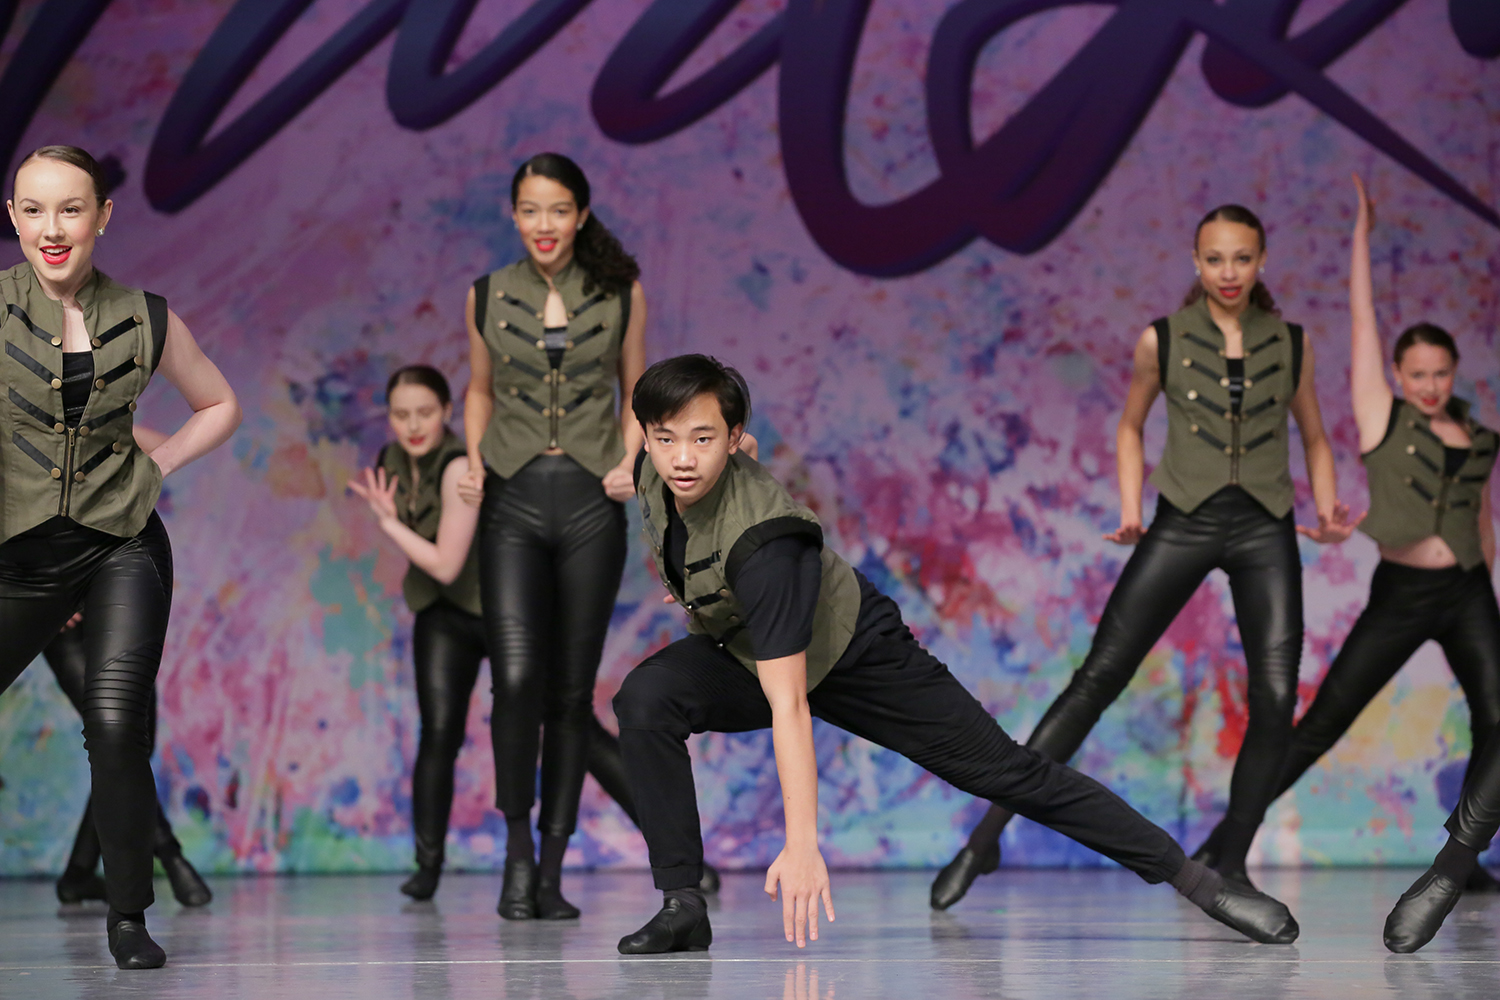 dance-gallery-dance-team-003